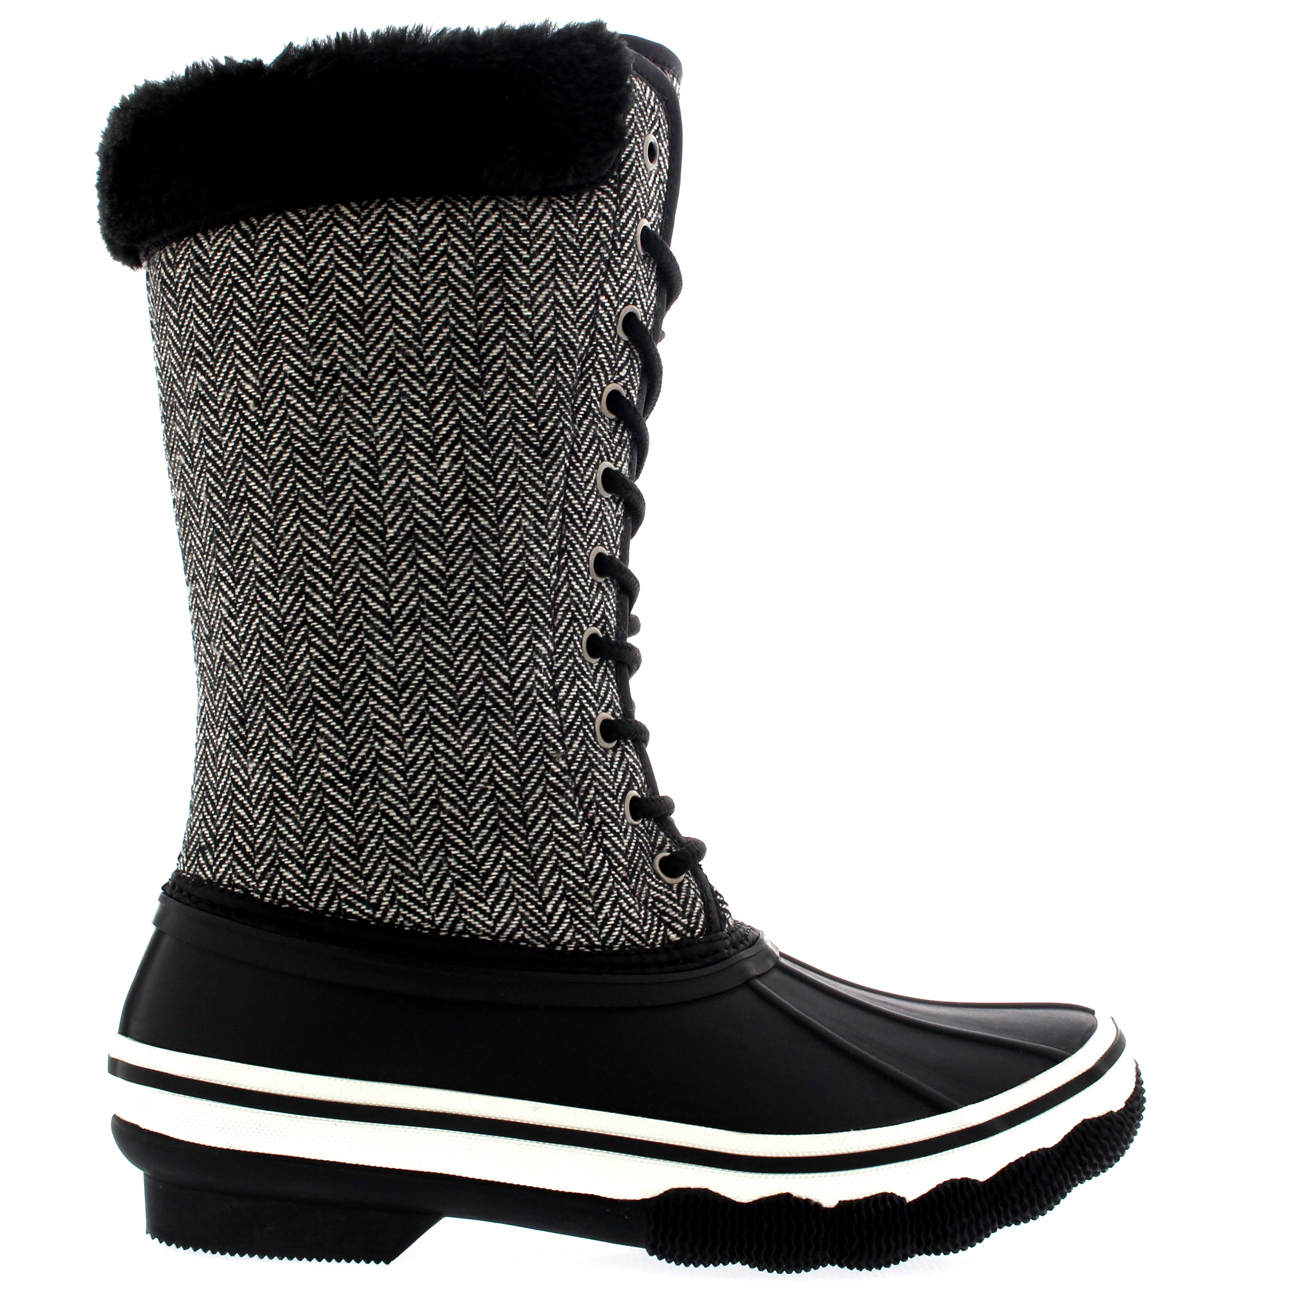 Rain Boots For Cold Weather Coltford Boots